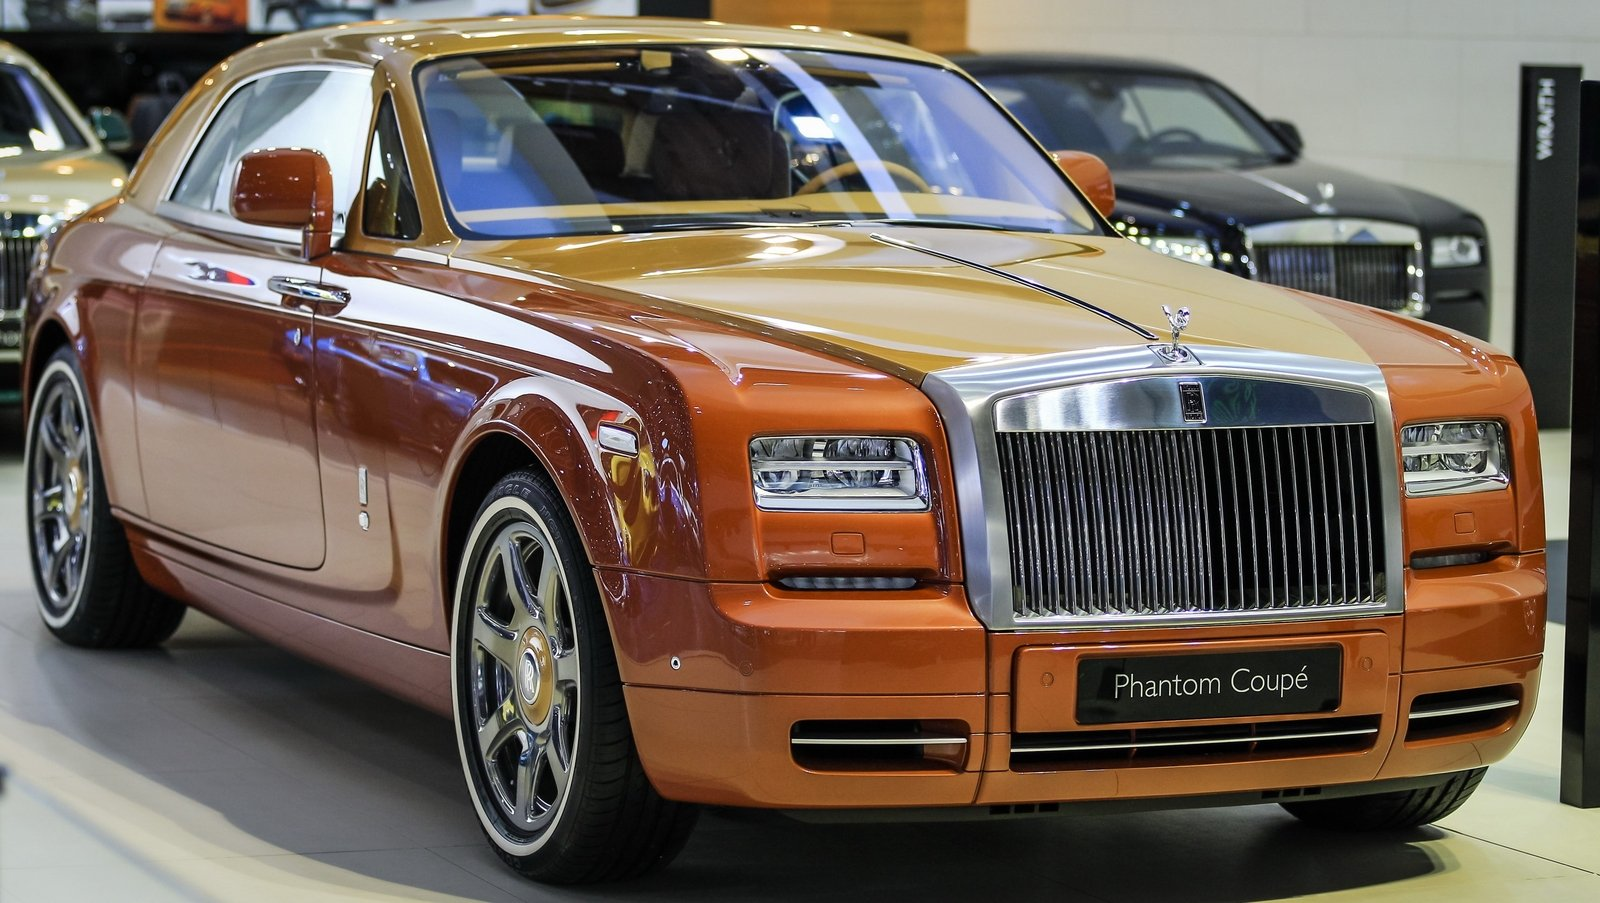 2015 rolls royce phantom coupe tiger edition review gallery top speed. Black Bedroom Furniture Sets. Home Design Ideas